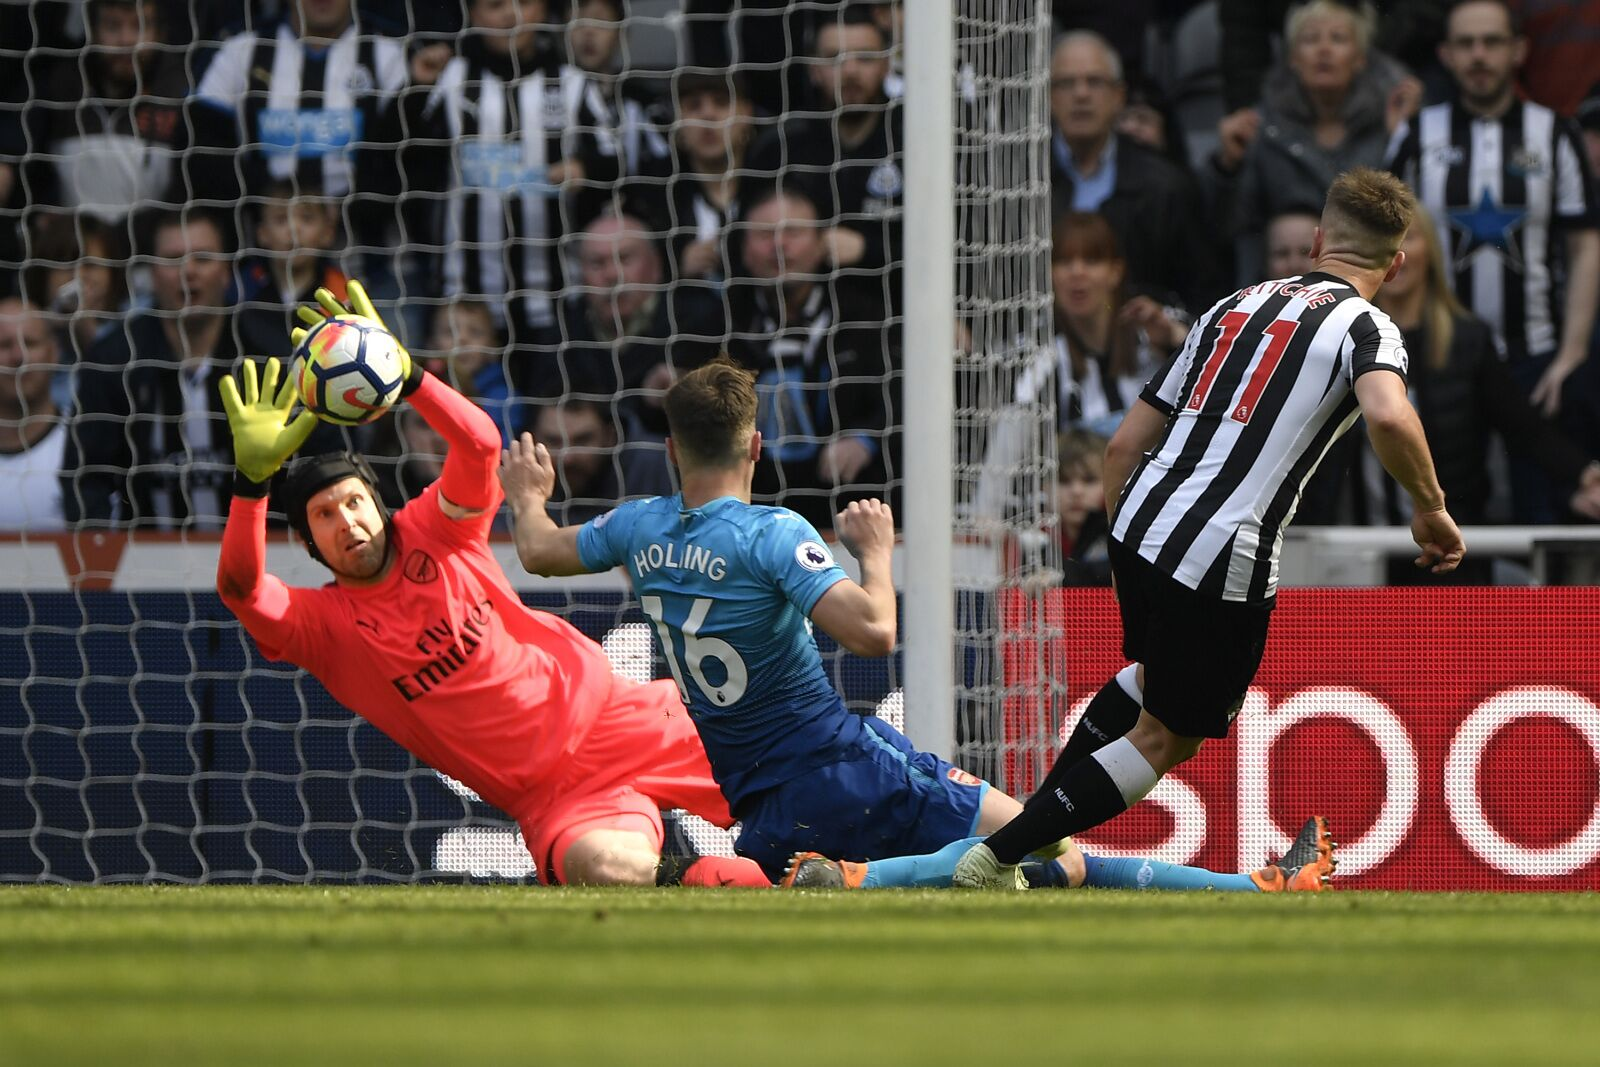 arsenal vs newcastle united highlights and analysis